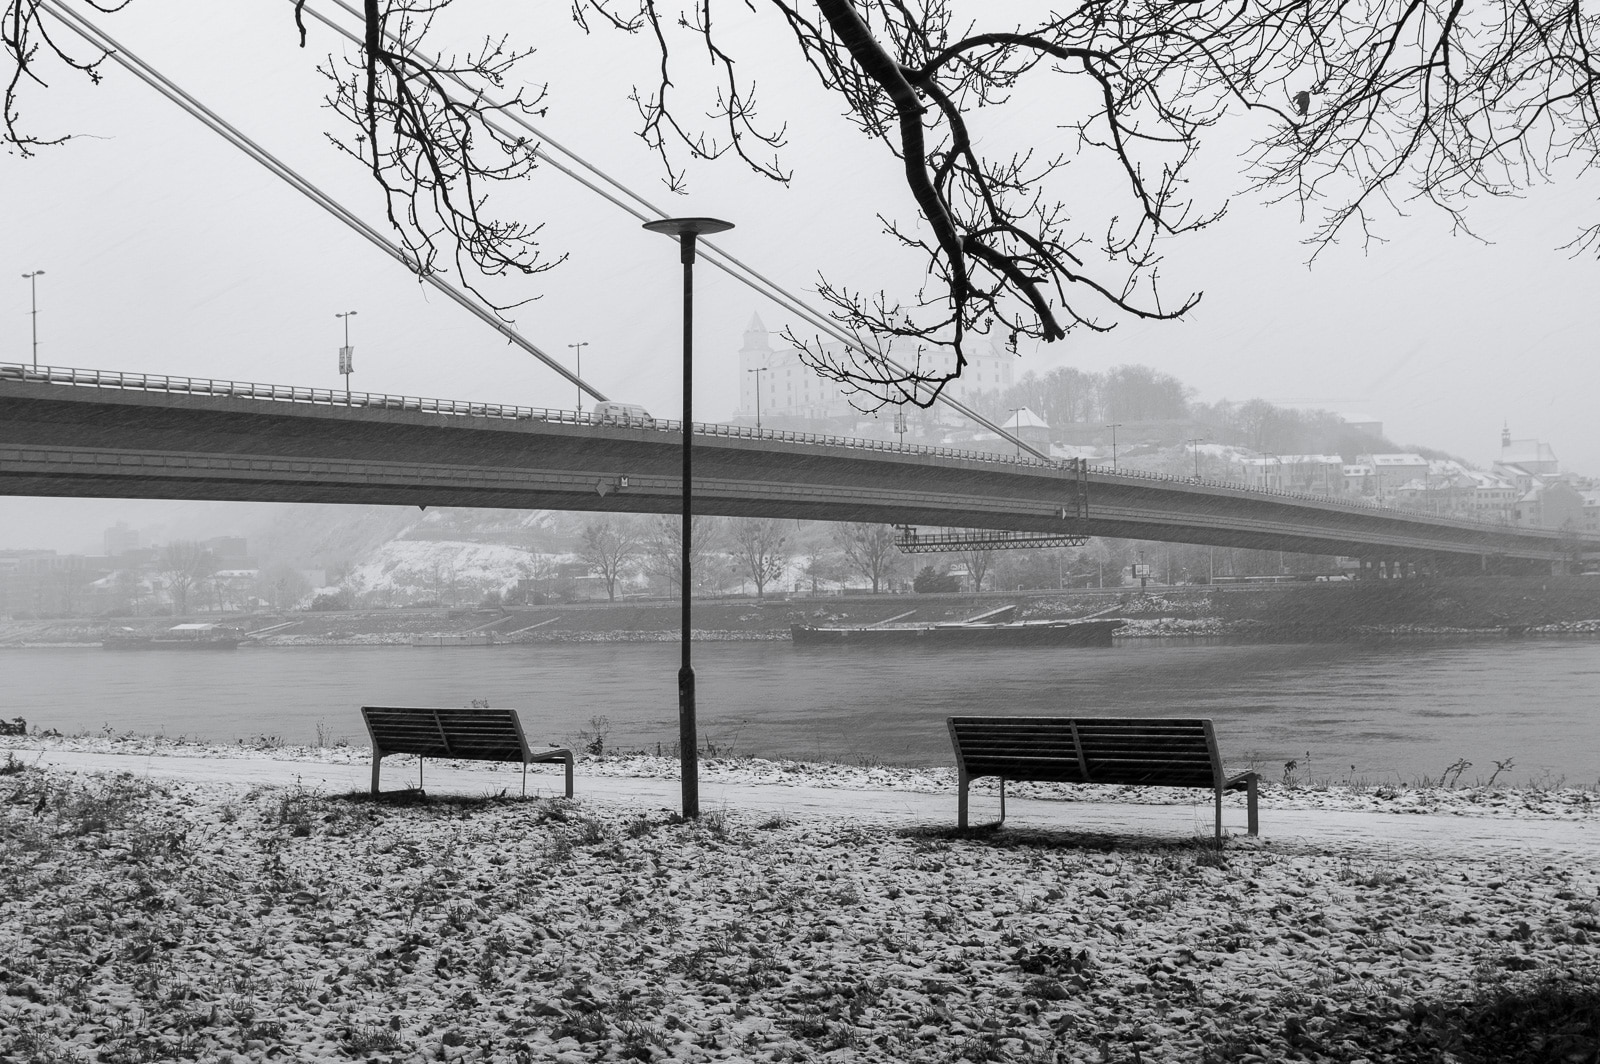 two benches on the bank of Danube with a suspended bridge in the background